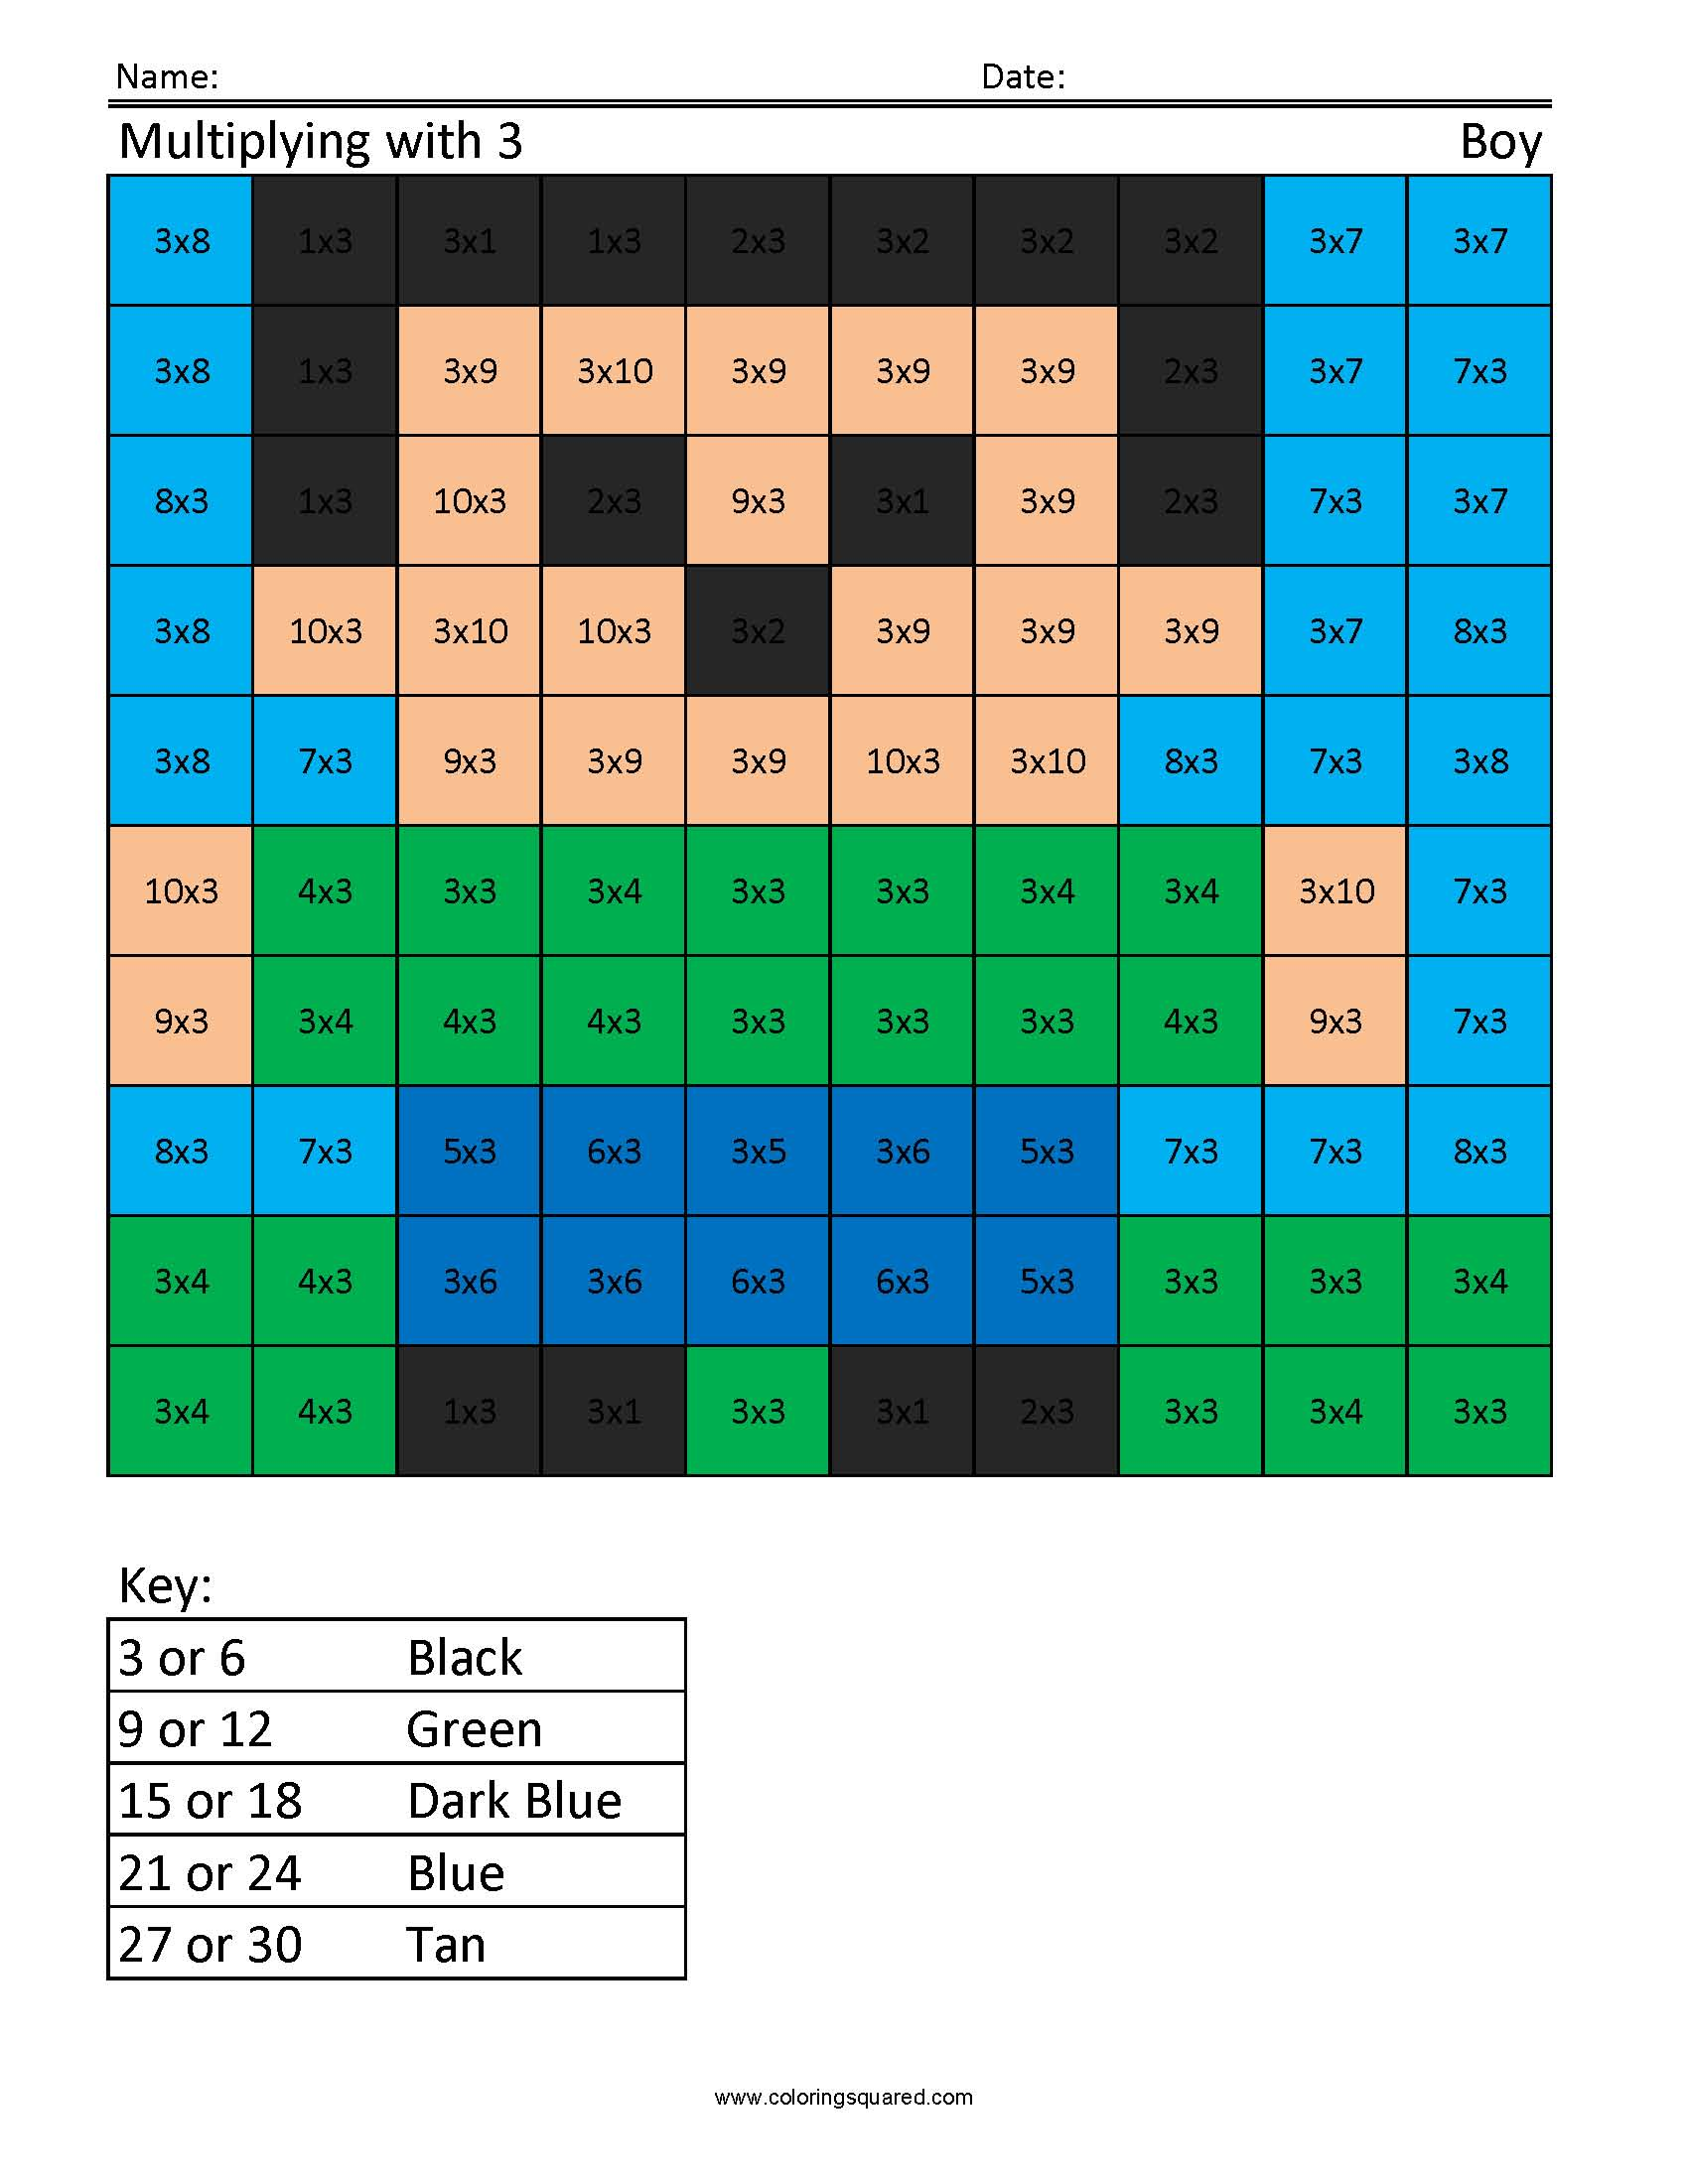 Jm3 Boy 2 Free Multiplication Times Table Practice